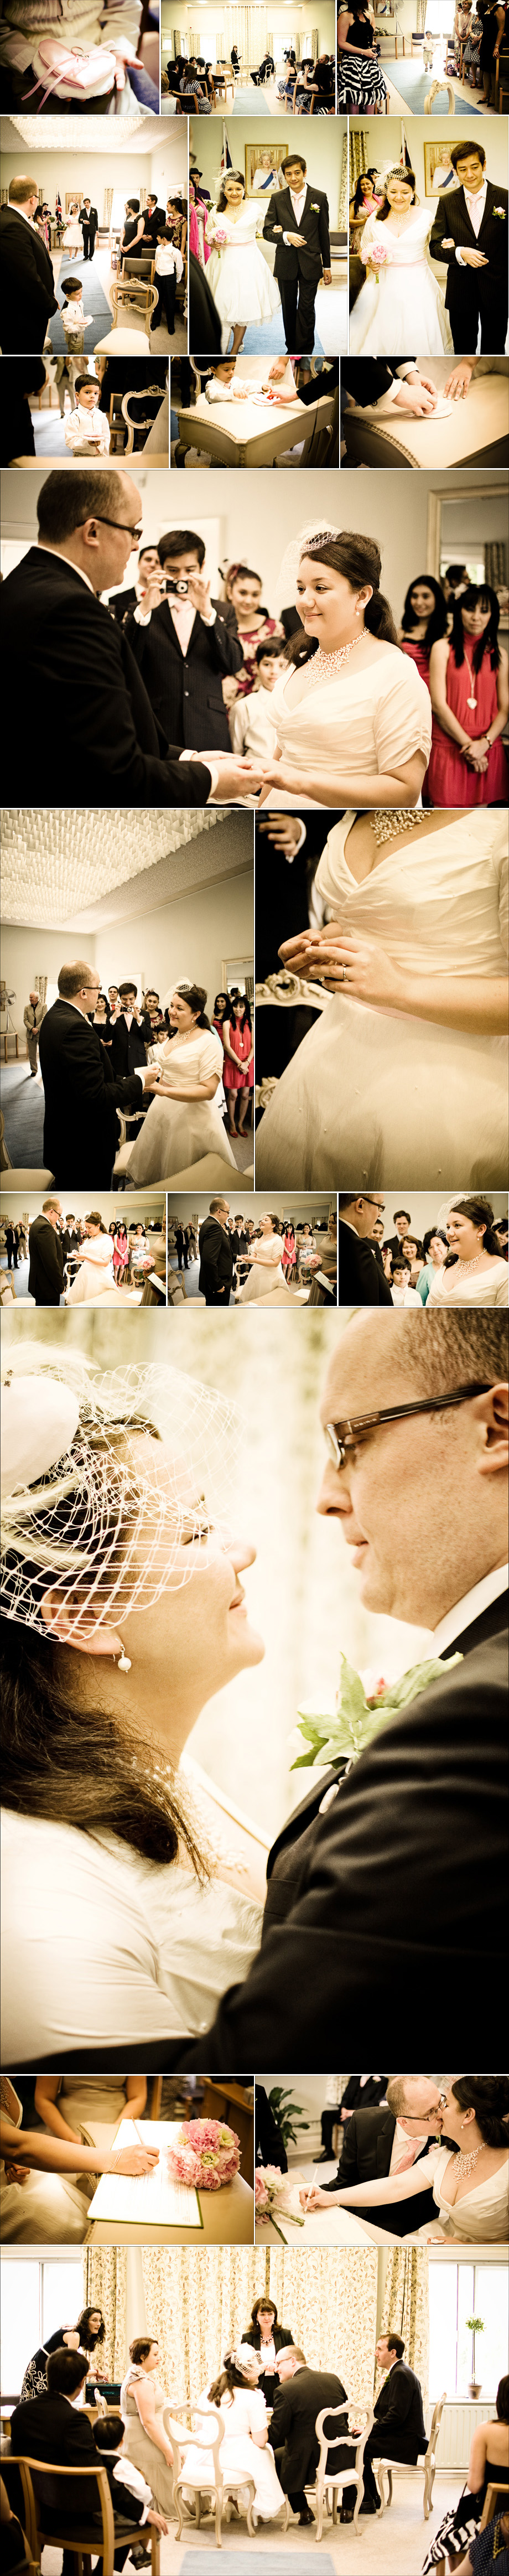 Vintage wedding - exchange of wedding vows